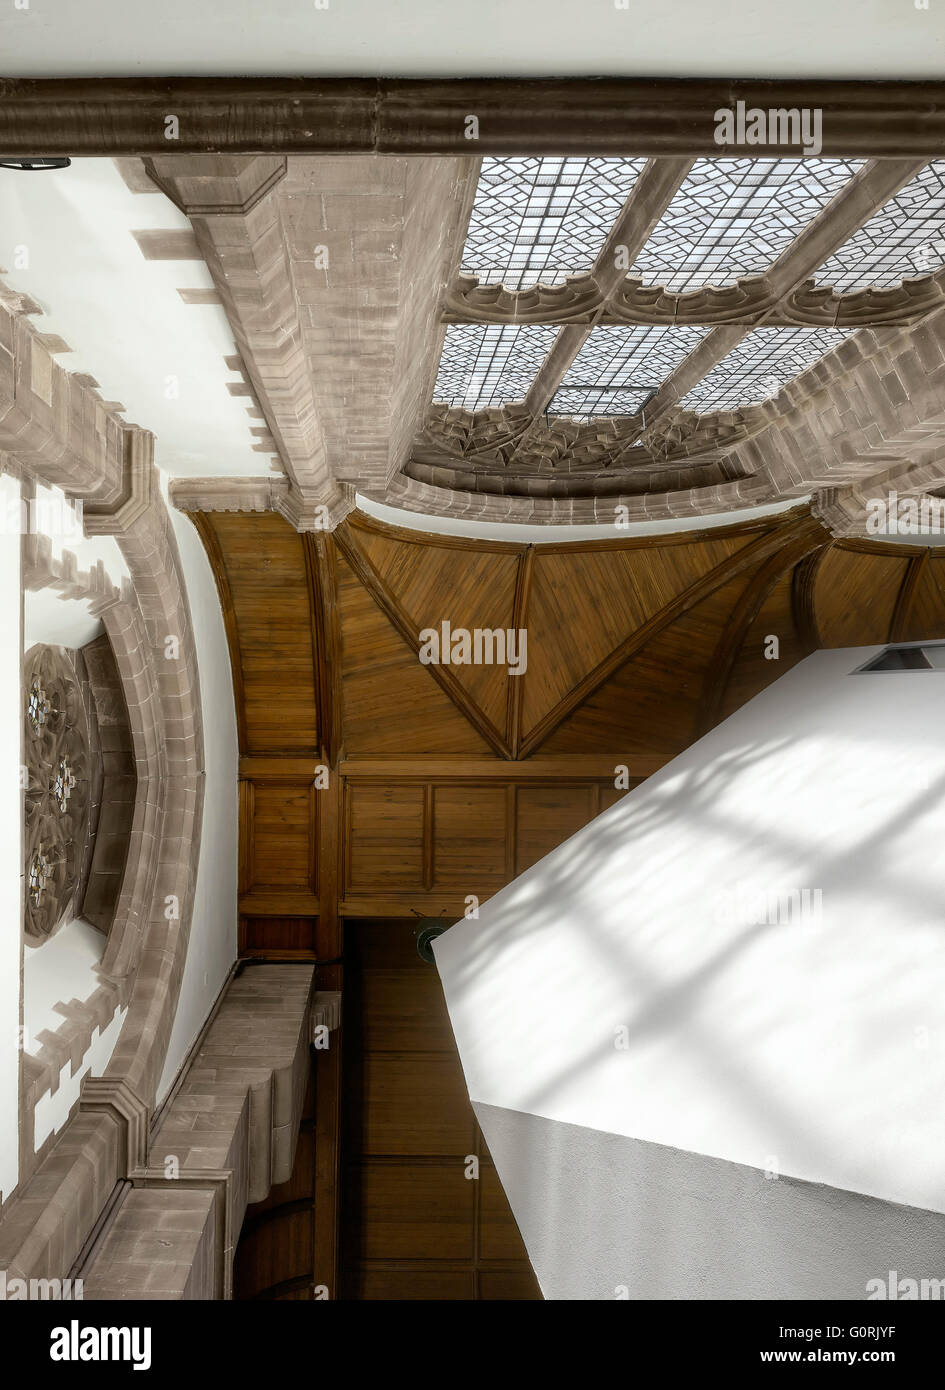 All Souls, Bolton, England. Angled view looking up at wood ceiling of the church. - Stock Image